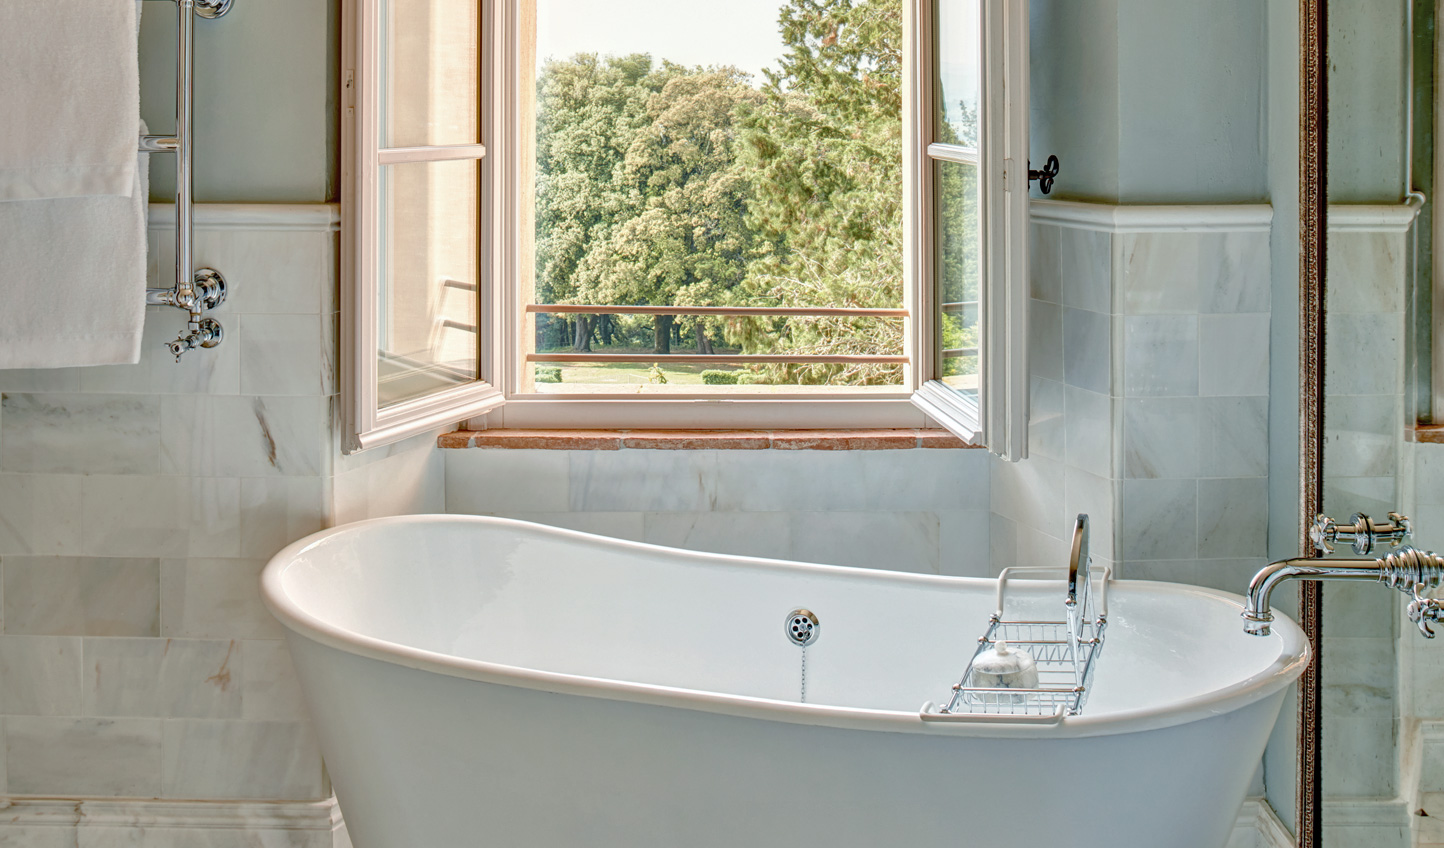 Soak in the tub with a view over the Tuscan hillsides